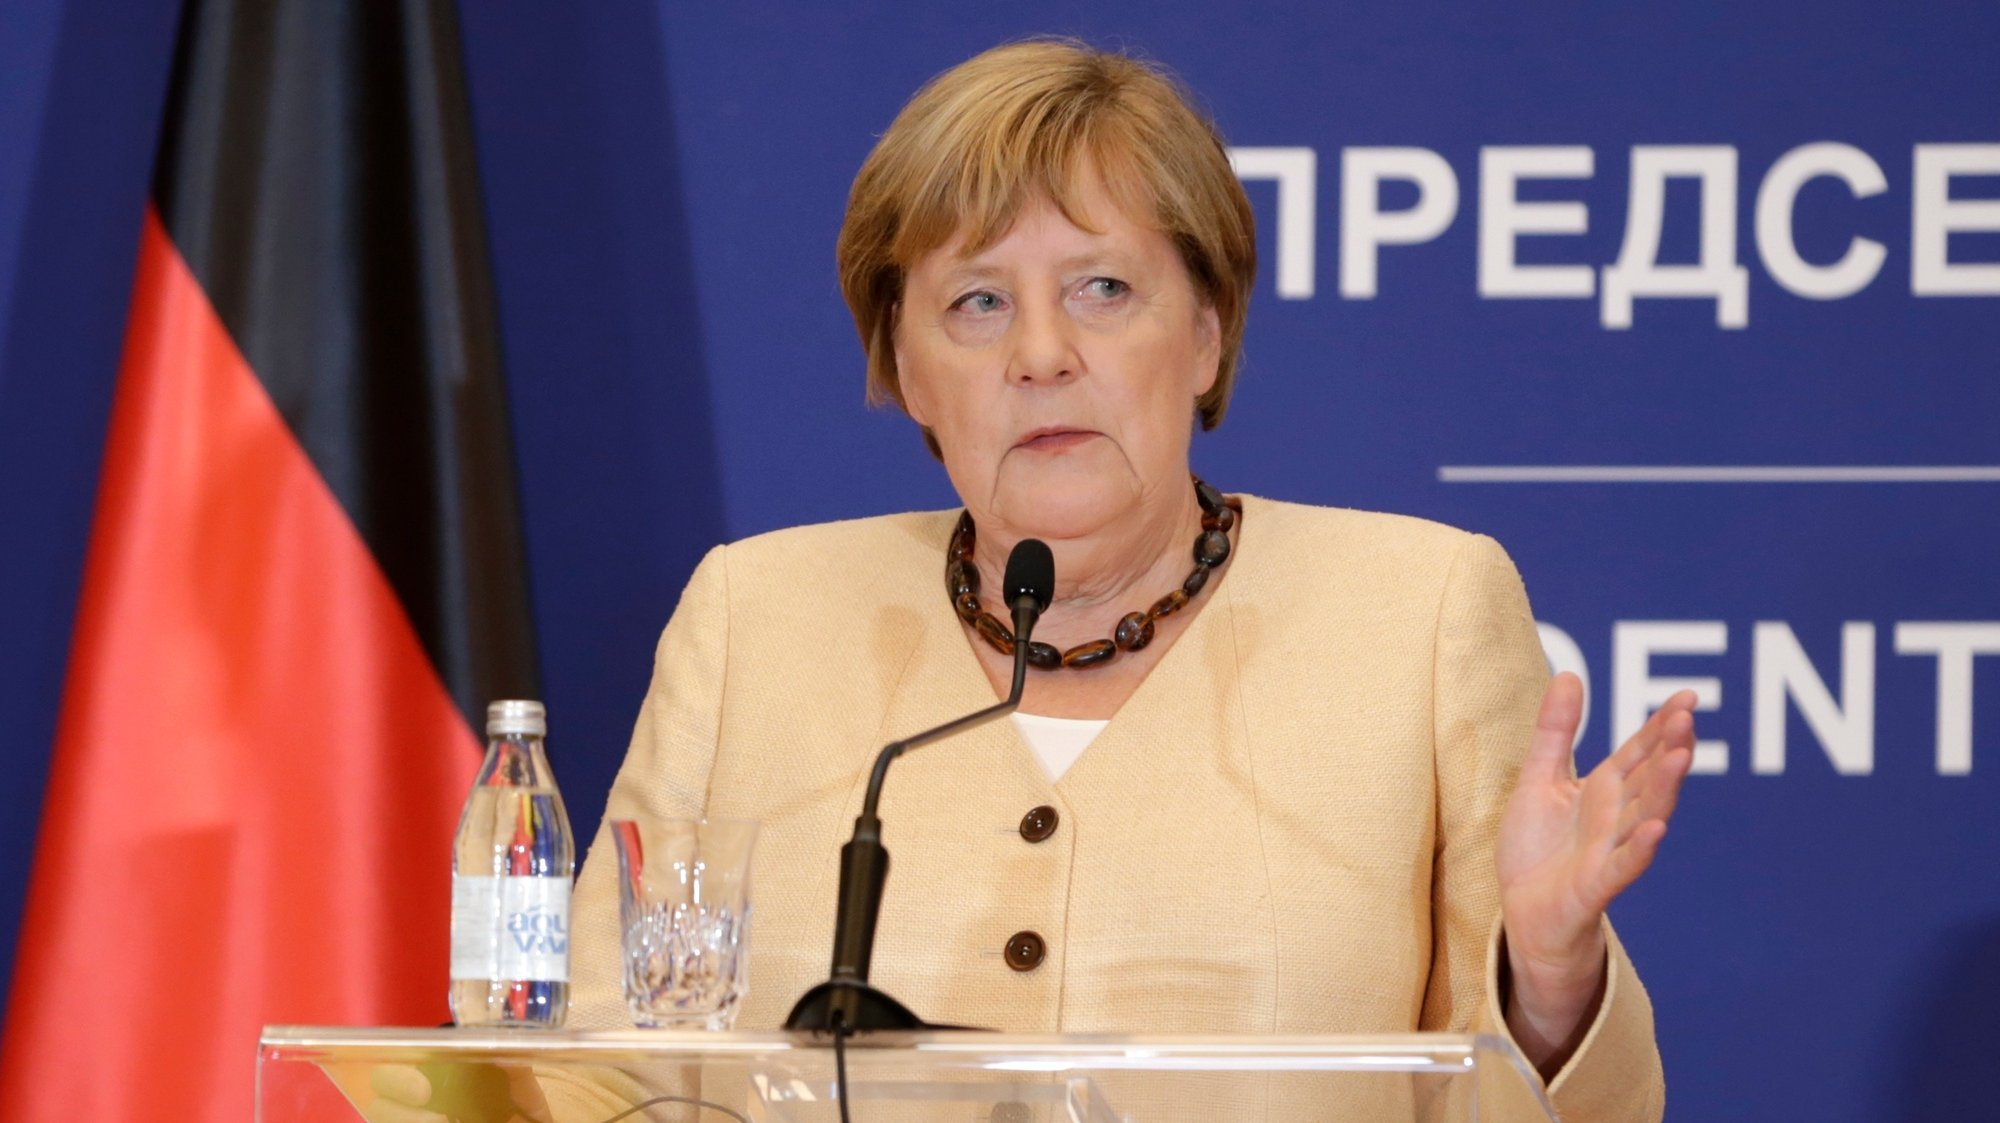 epa09466043 German Chancellor Angela Merkel talks during the press conference with Serbian President Aleksandar Vucic (not pictured) after their meeting in Belgrade, Serbia, 13 September 2021. Chancellor Merkel is on an official state visit to Serbia.  EPA/ANDREJ CUKIC